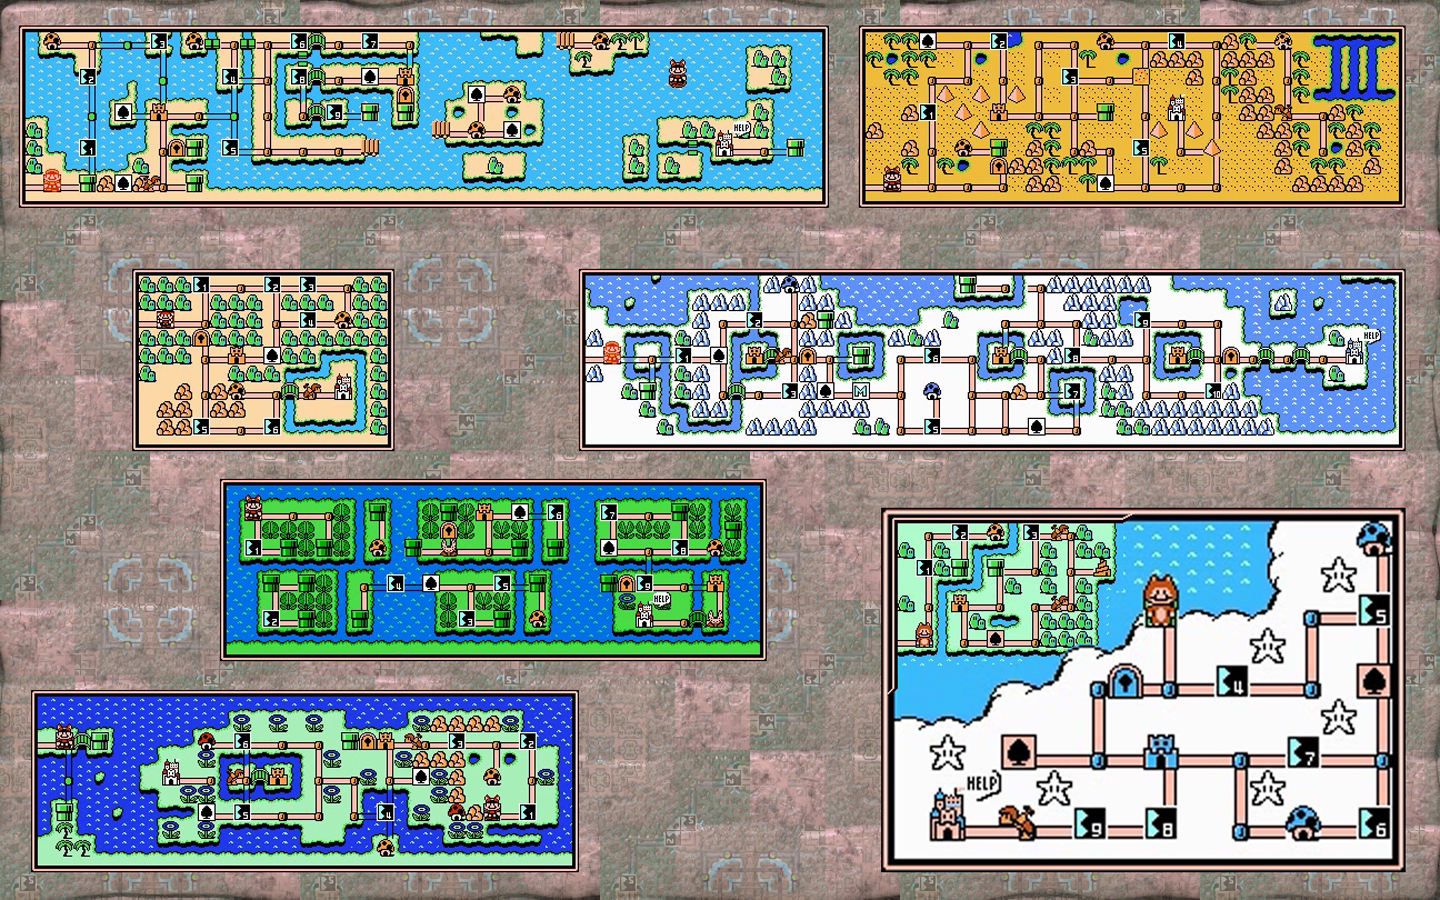 Super mario brothers 3 maps by jobexi on deviantart super mario brothers 3 maps by jobexi gumiabroncs Images